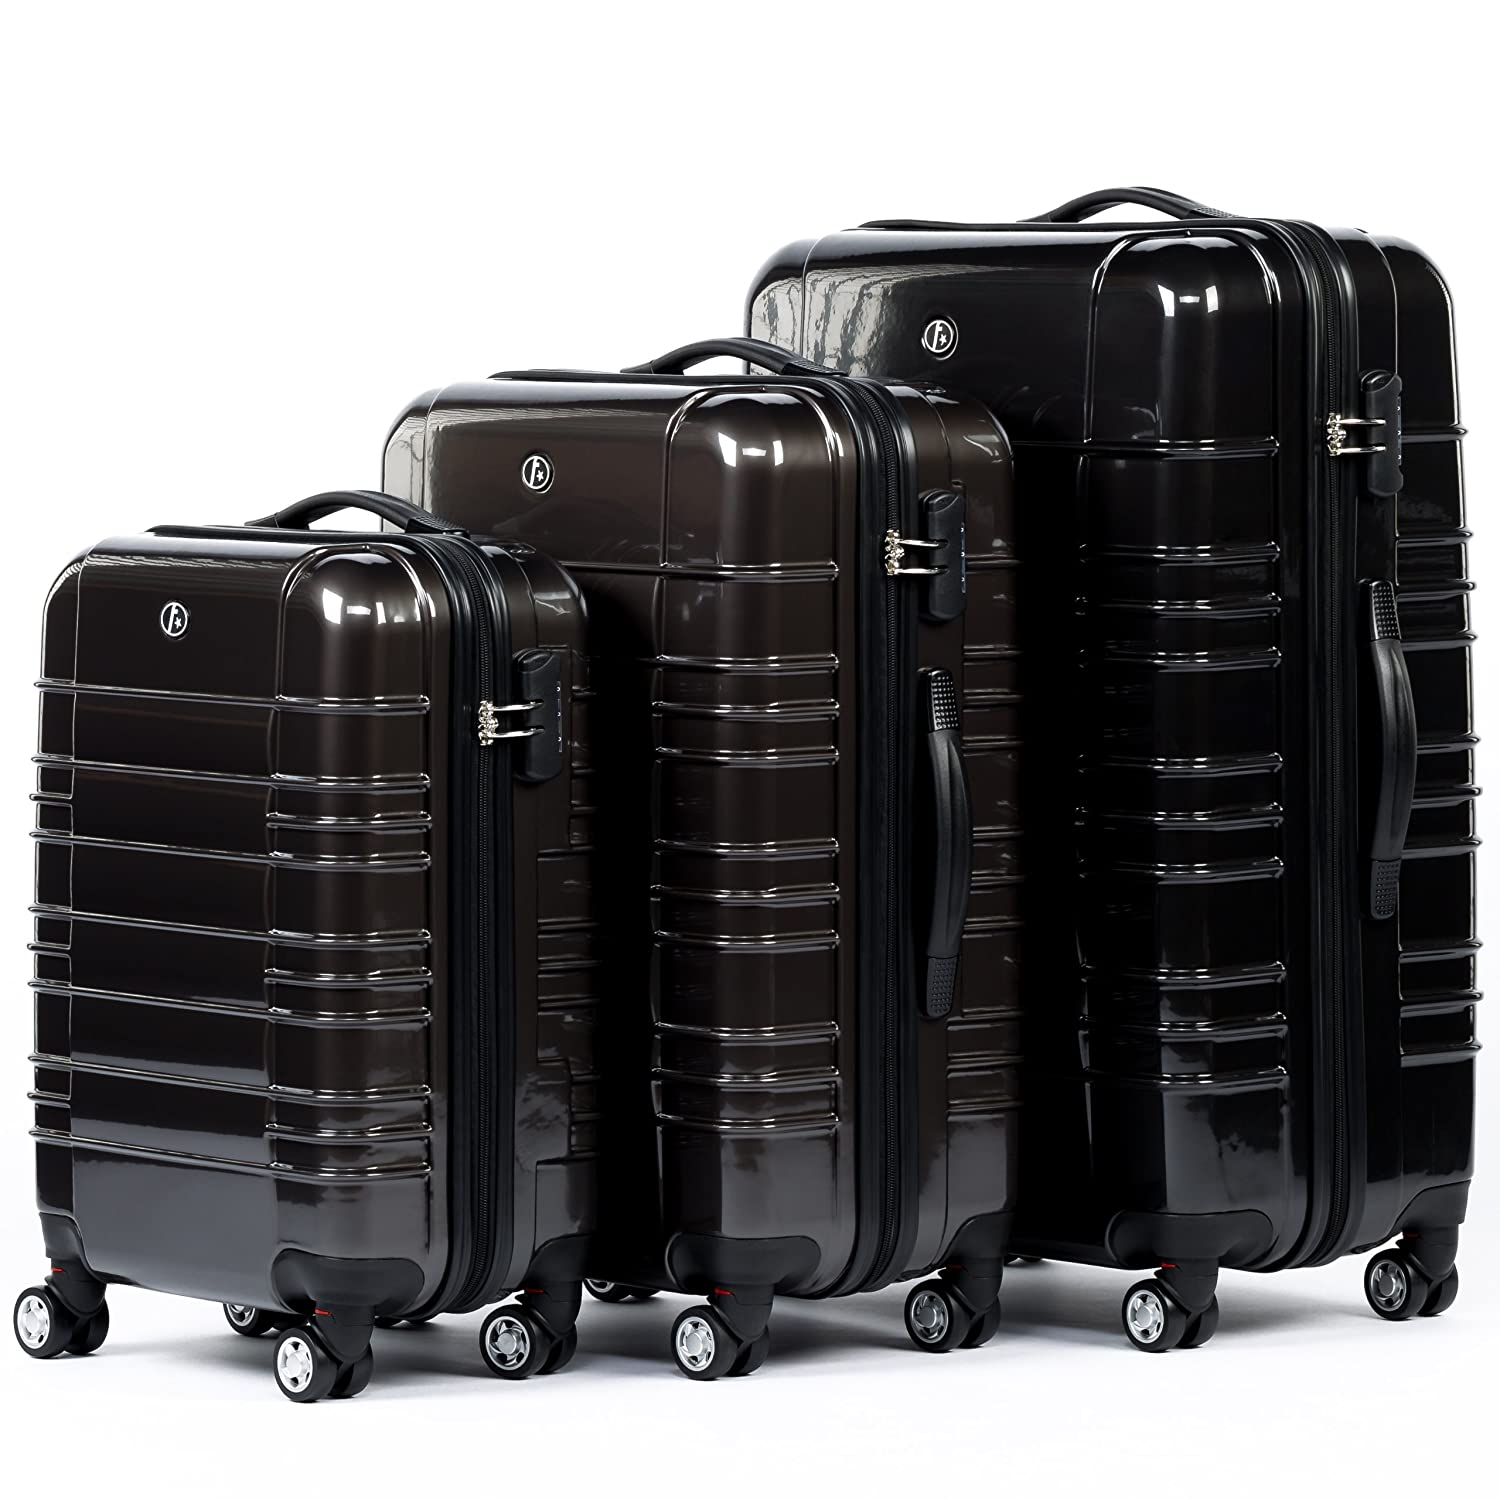 21e29ede4c FERGÉ luggage set 3 piece hard shell trolley NICE suitcase set 4 twin  spinner wheels grey